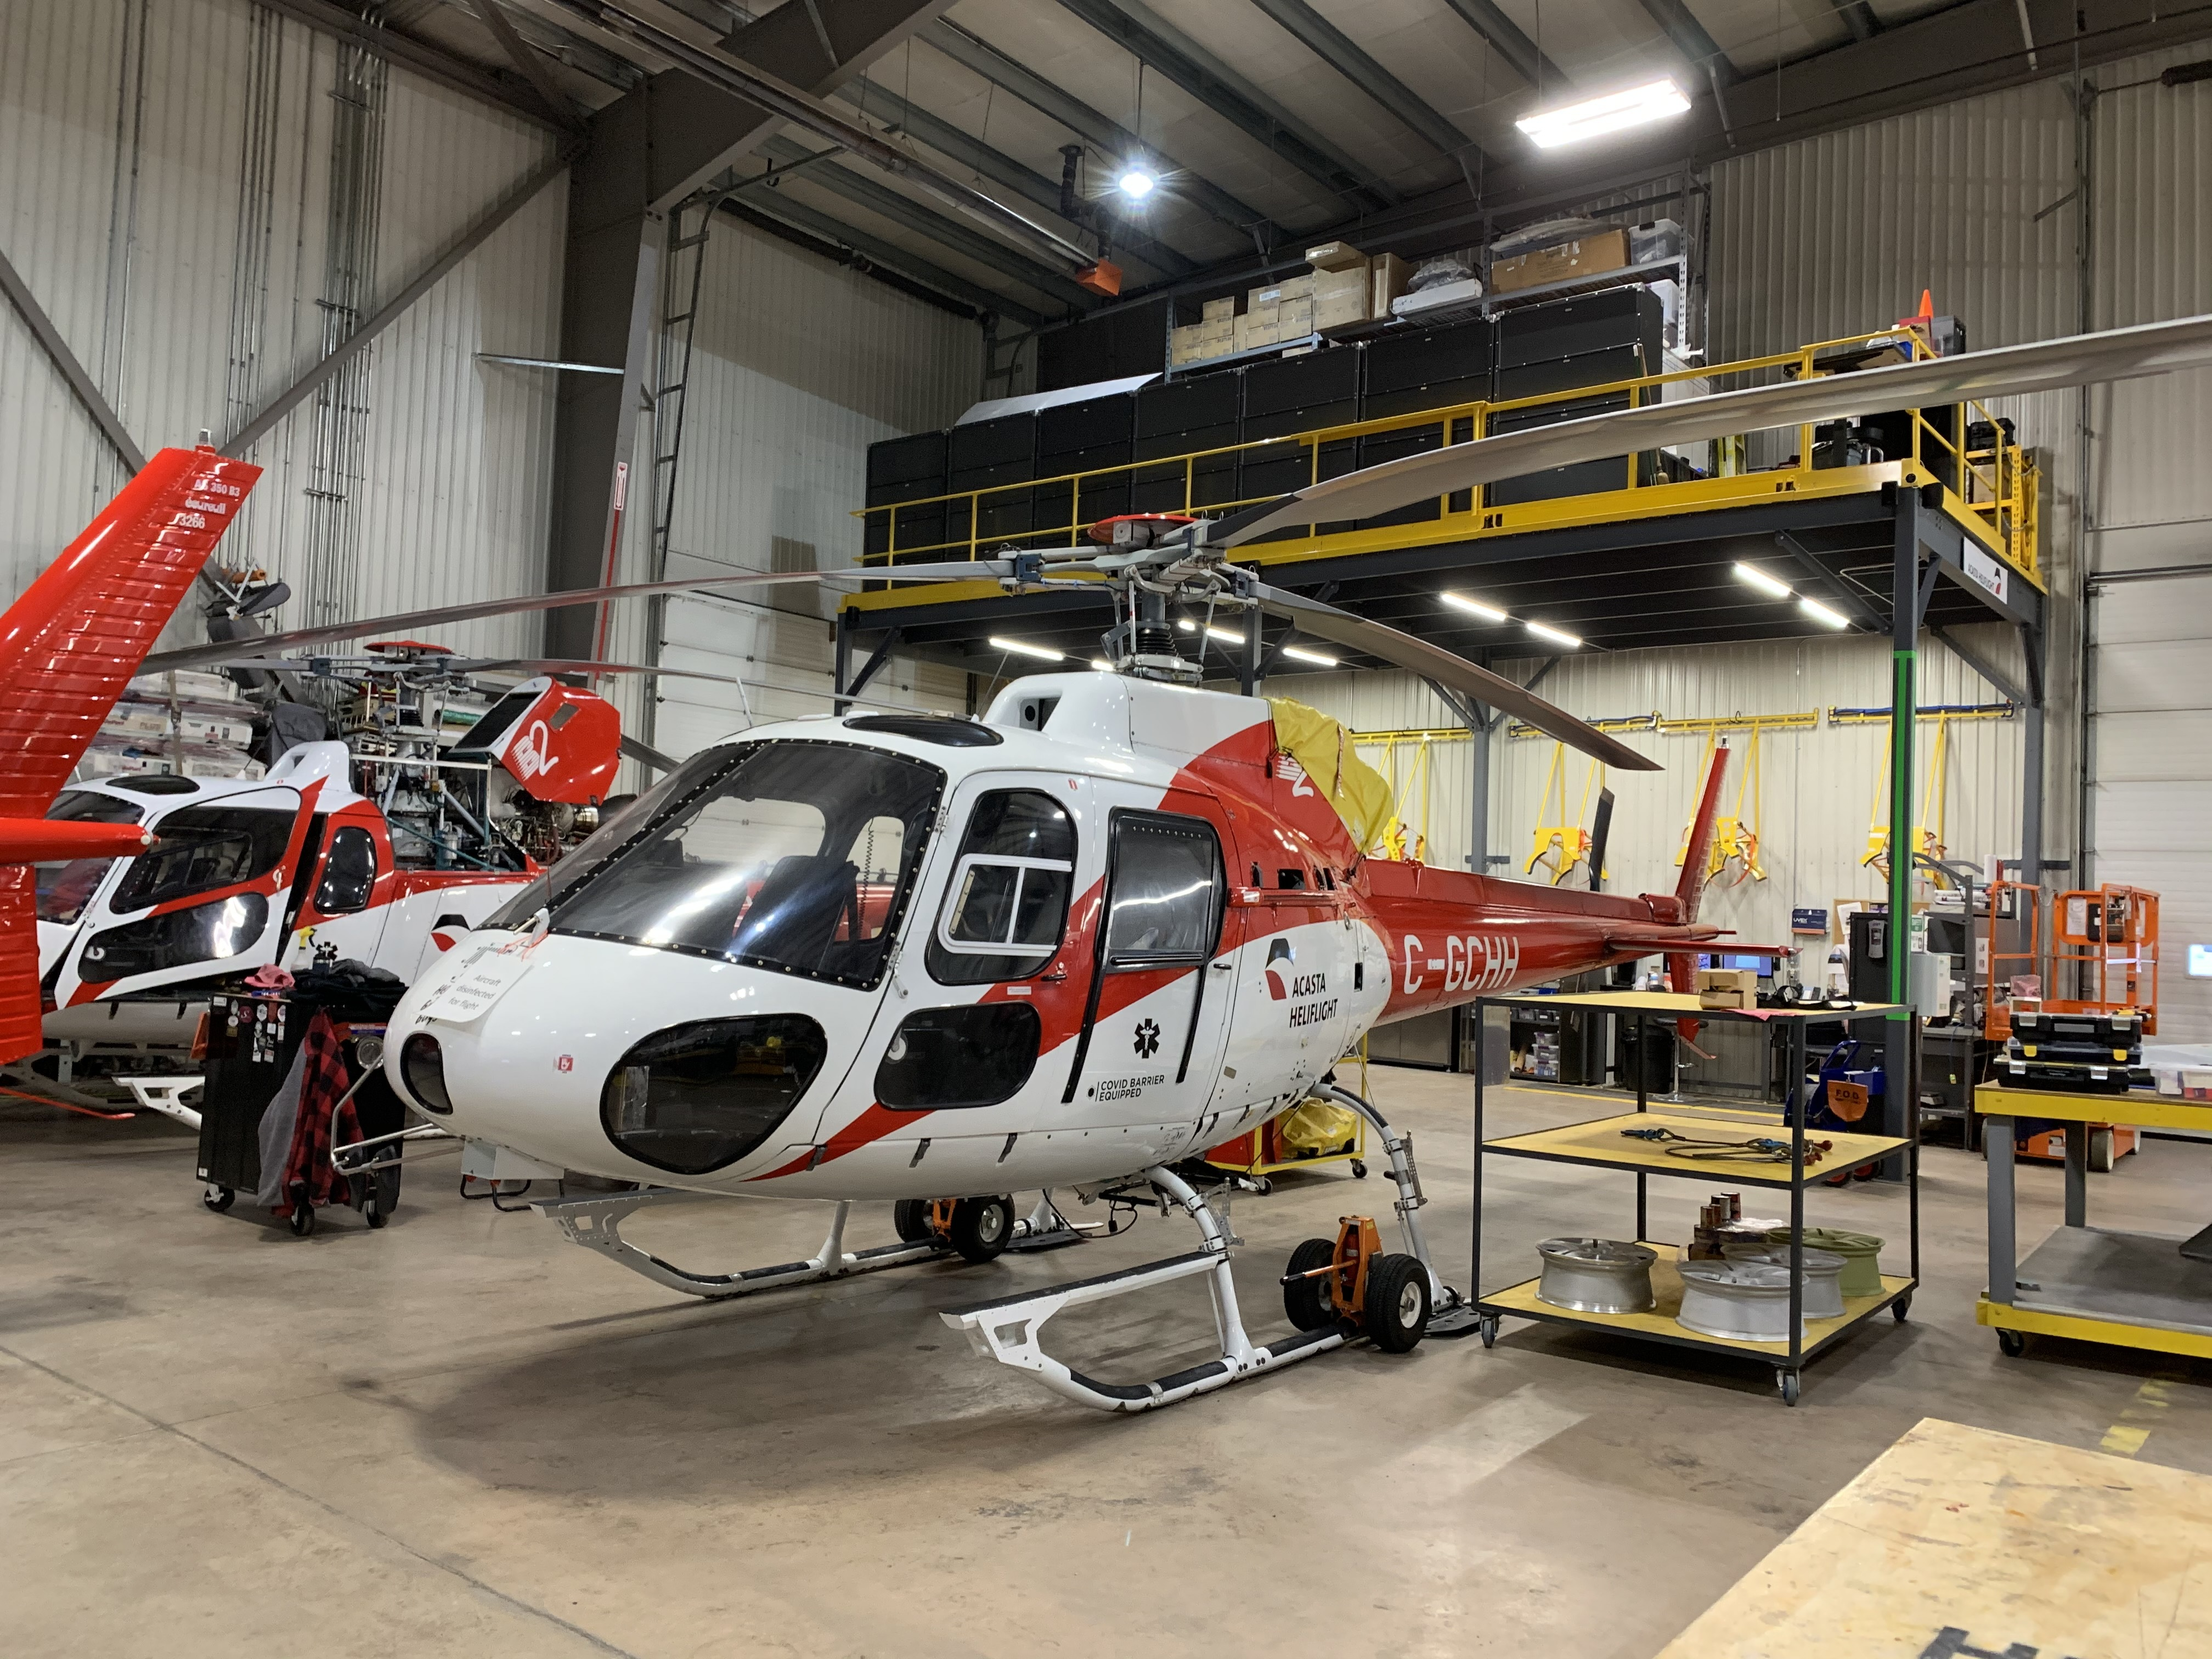 The Acasta helicopter hanger in Yellowknife (Sidney Cohen/CBC)